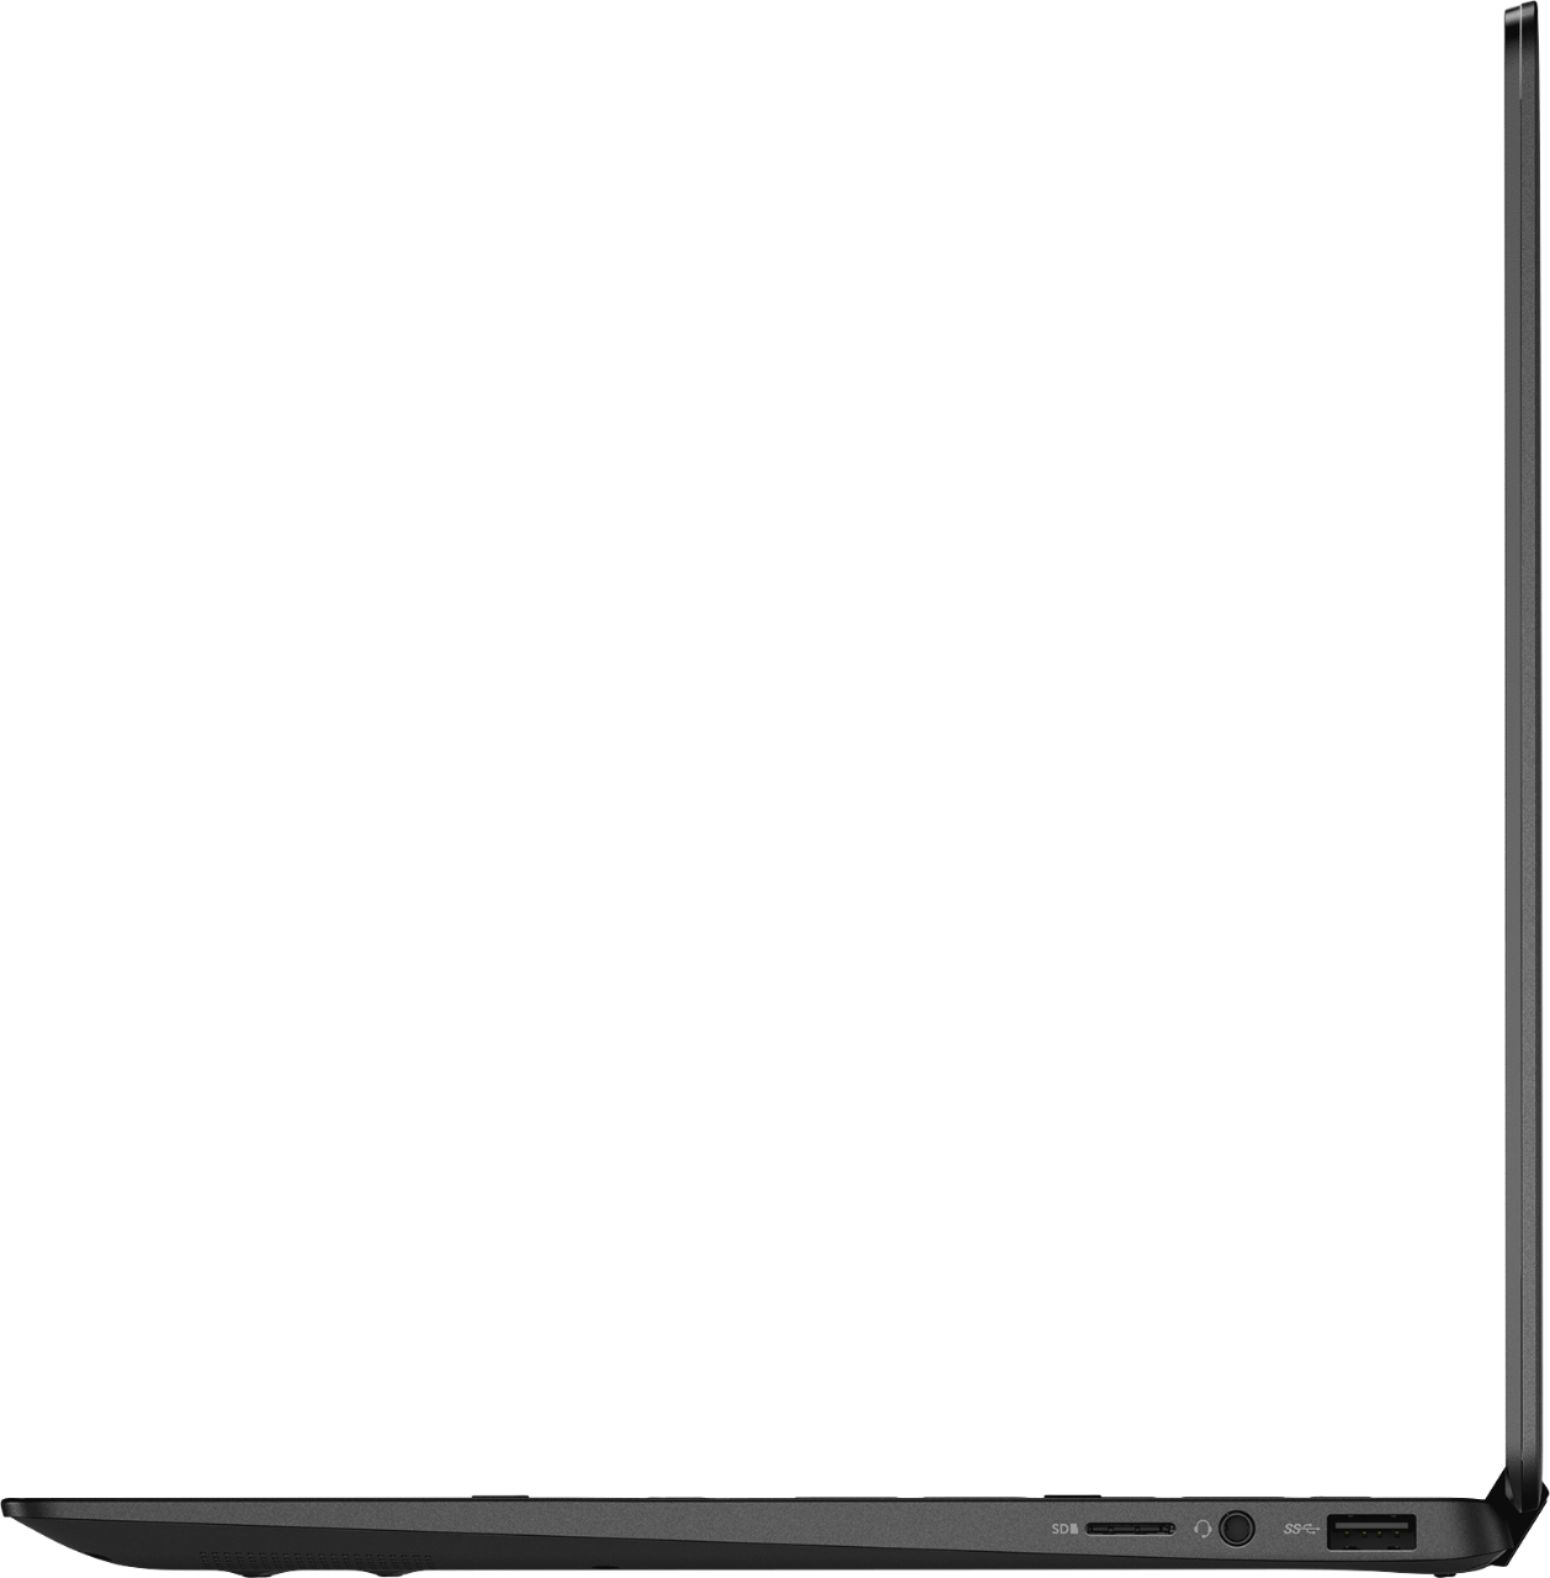 """Alt View Zoom 10. Dell - Geek Squad Certified Refurbished Inspiron 13.3"""" 4K Ultra HD Touch-Screen Laptop - Intel Core i7 - 16GB Memory- 256GB SSD - Black."""